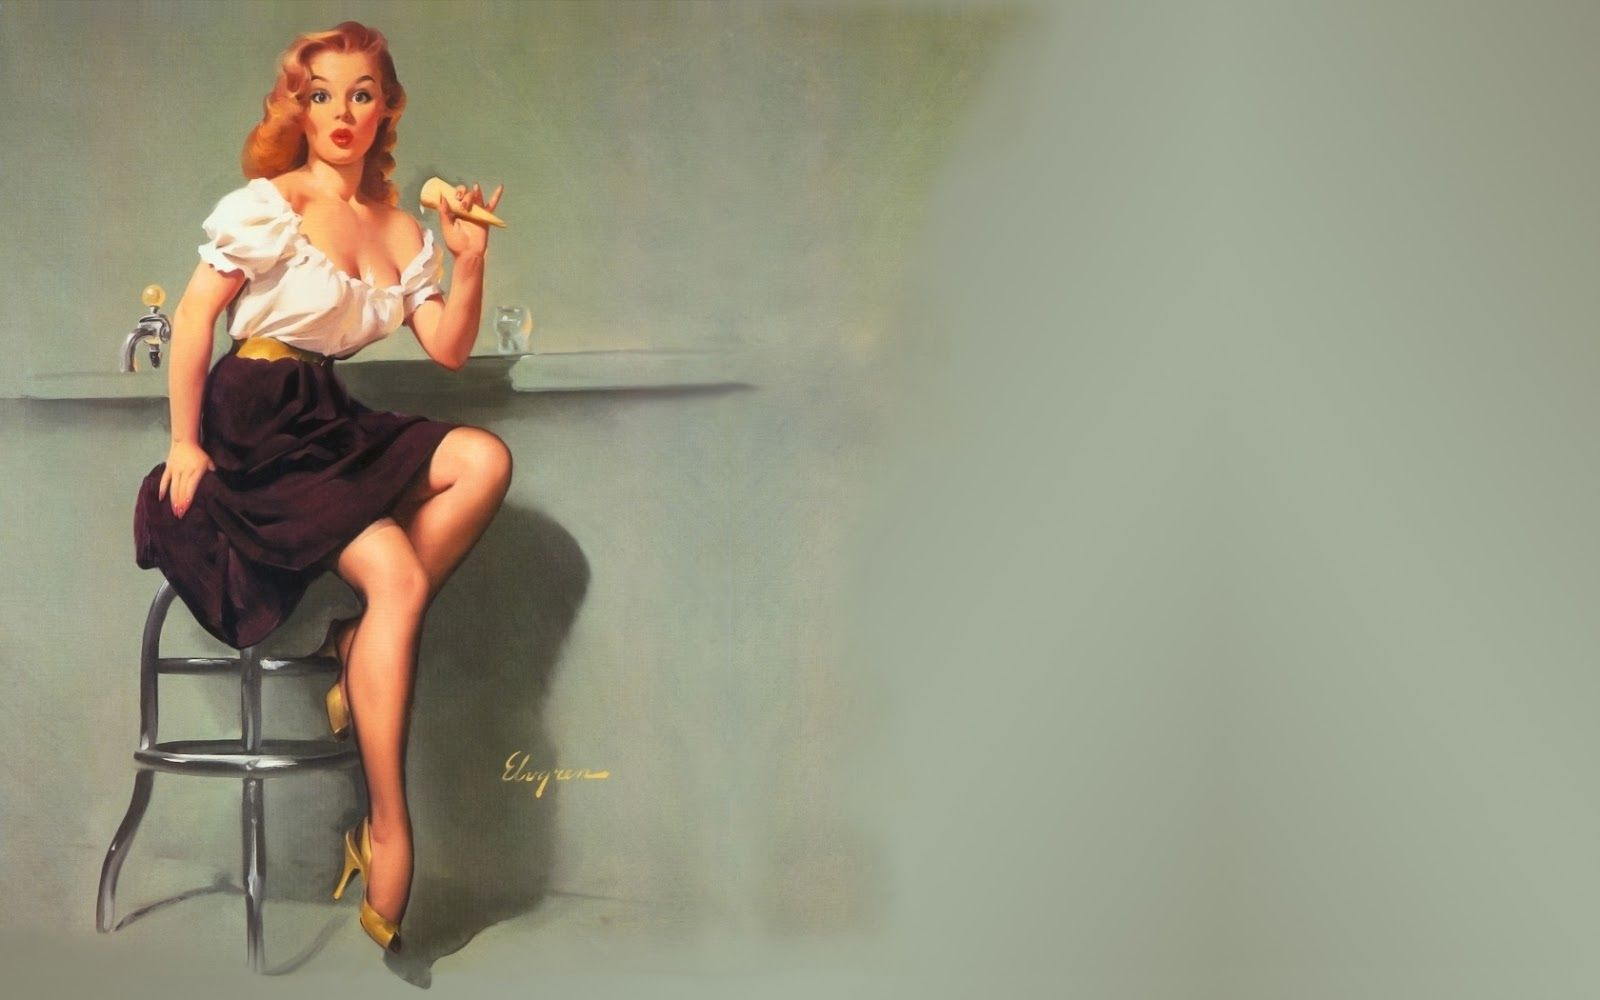 Pin Up Girl Hd Wallpaper Posted By Ethan Cunningham